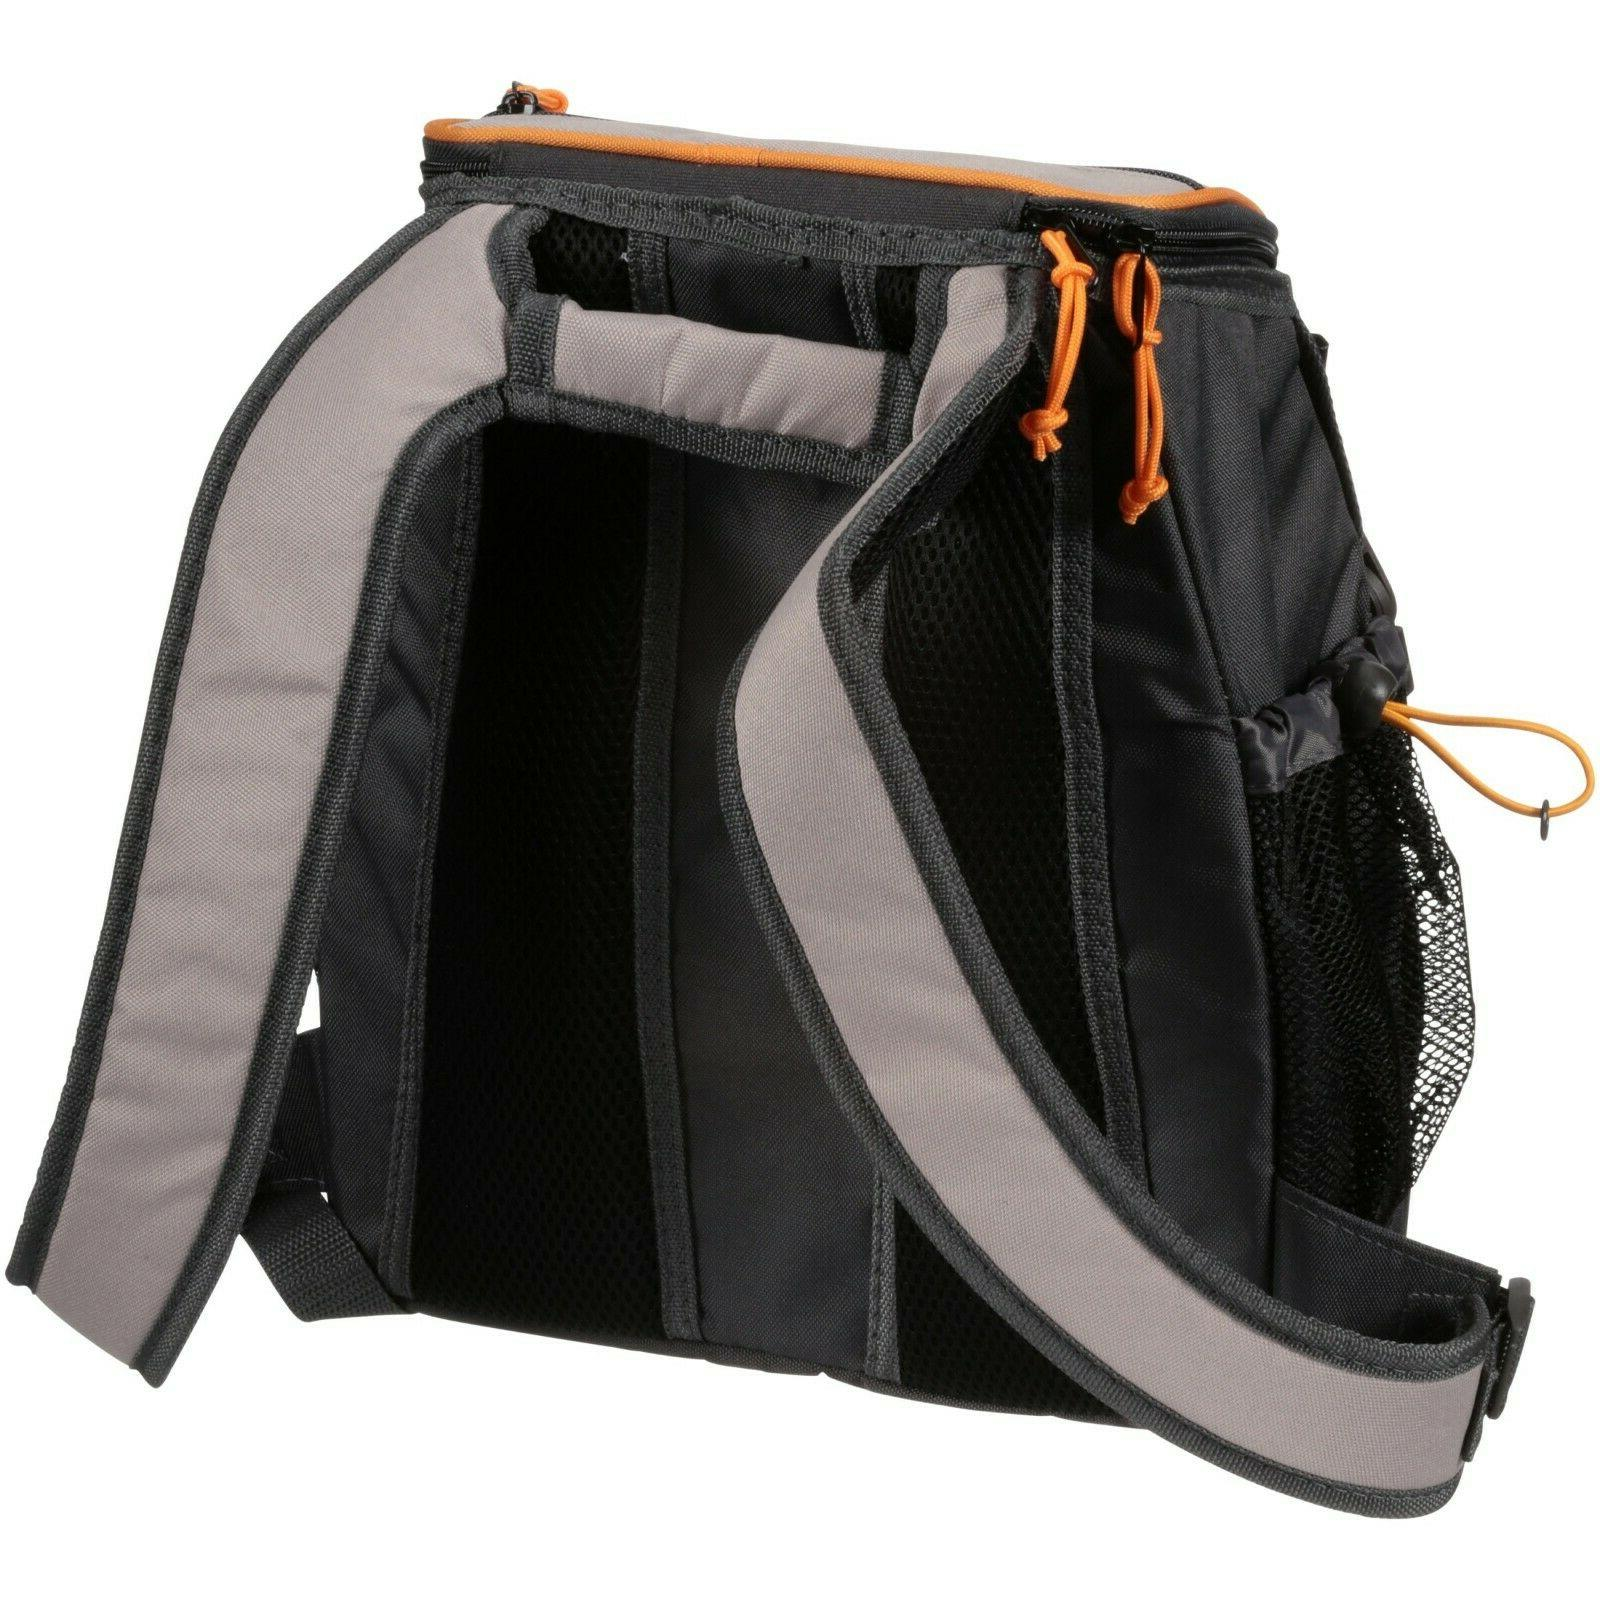 Backpack Cooler Camping Durable Sleek Sturdy Bag MaxCold Insulation